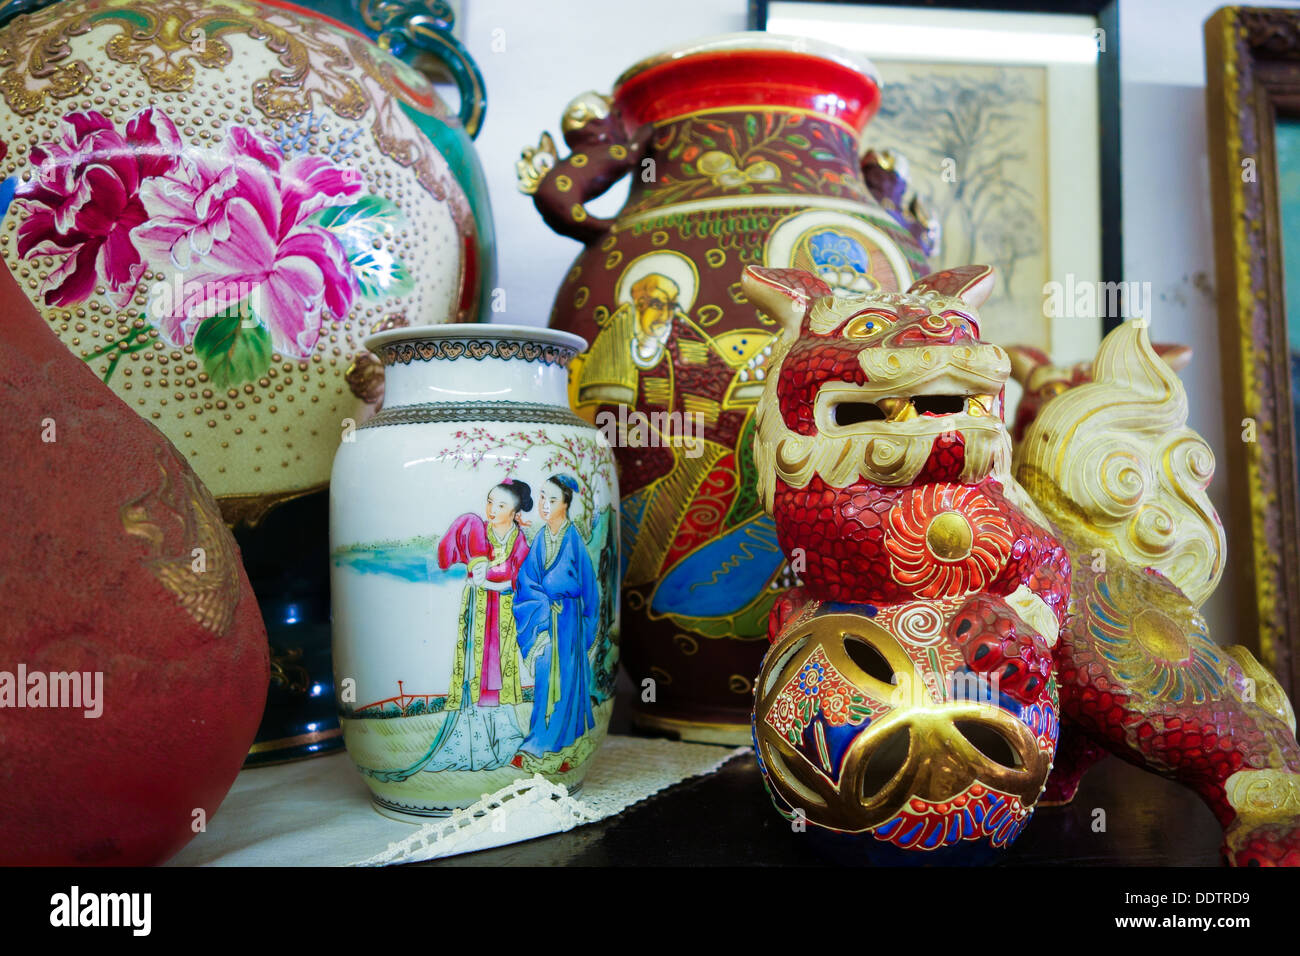 Various Asian or oriental style vases and figurines in an antique shop. - Stock Image